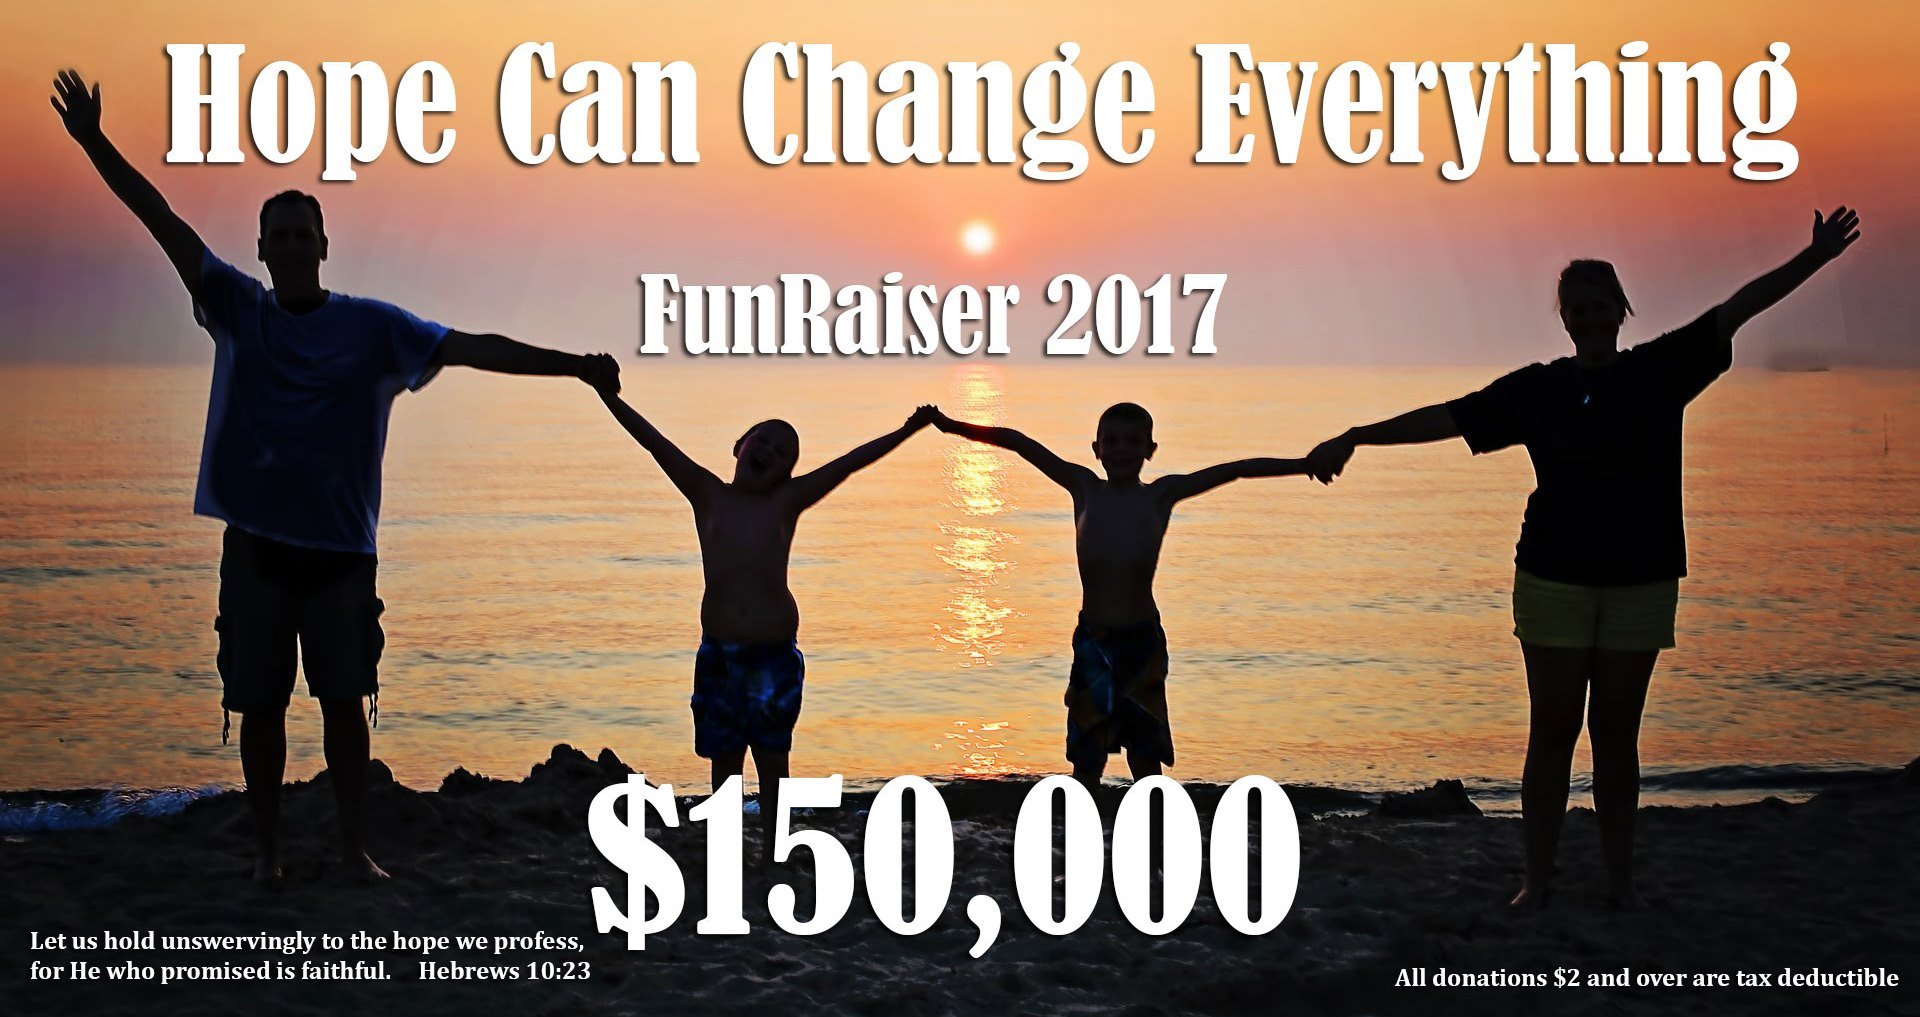 Hope-Can-Change-Everything-Funraiser-2017-after